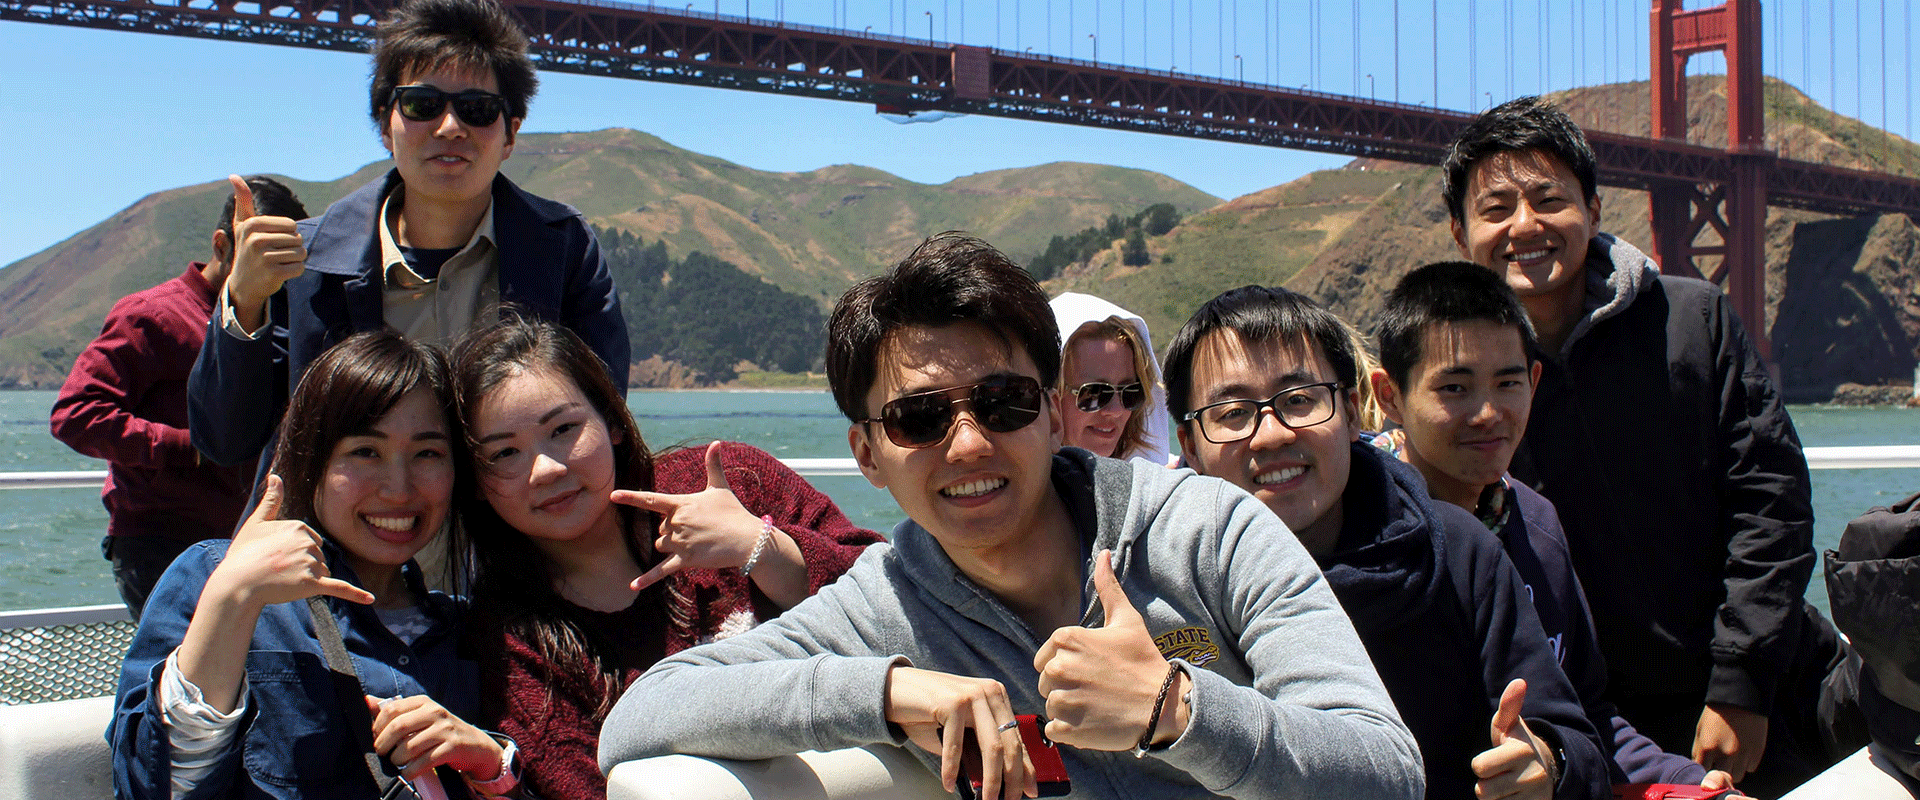 American Language Institute students take a bay cruise by the Golden Gate Bridge